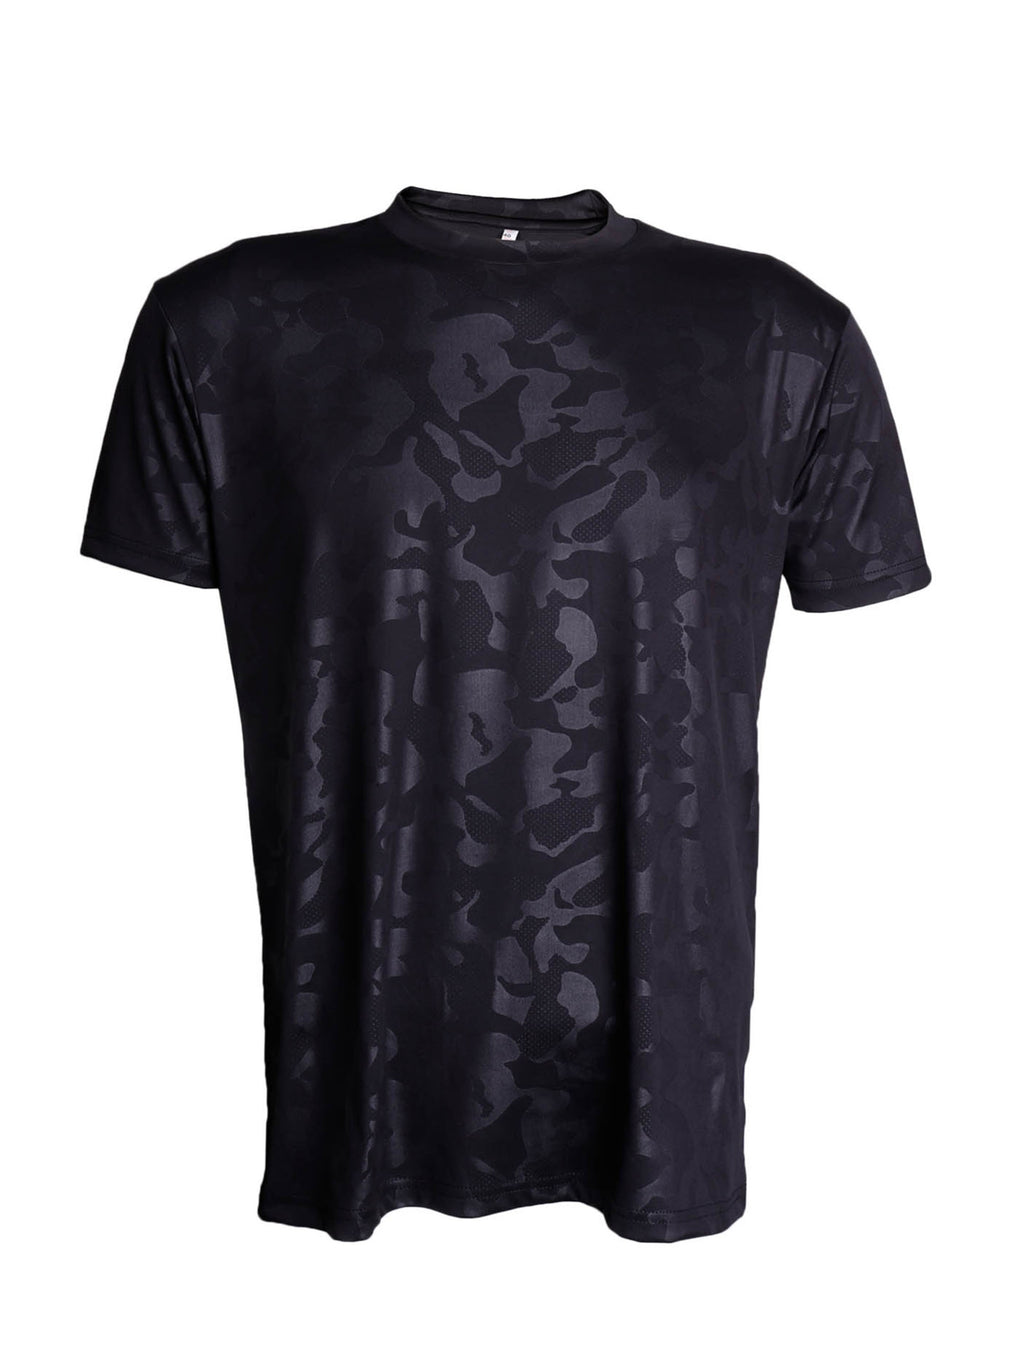 BlacK Lycra Army Half Sleeve Round Neck T-Shirt